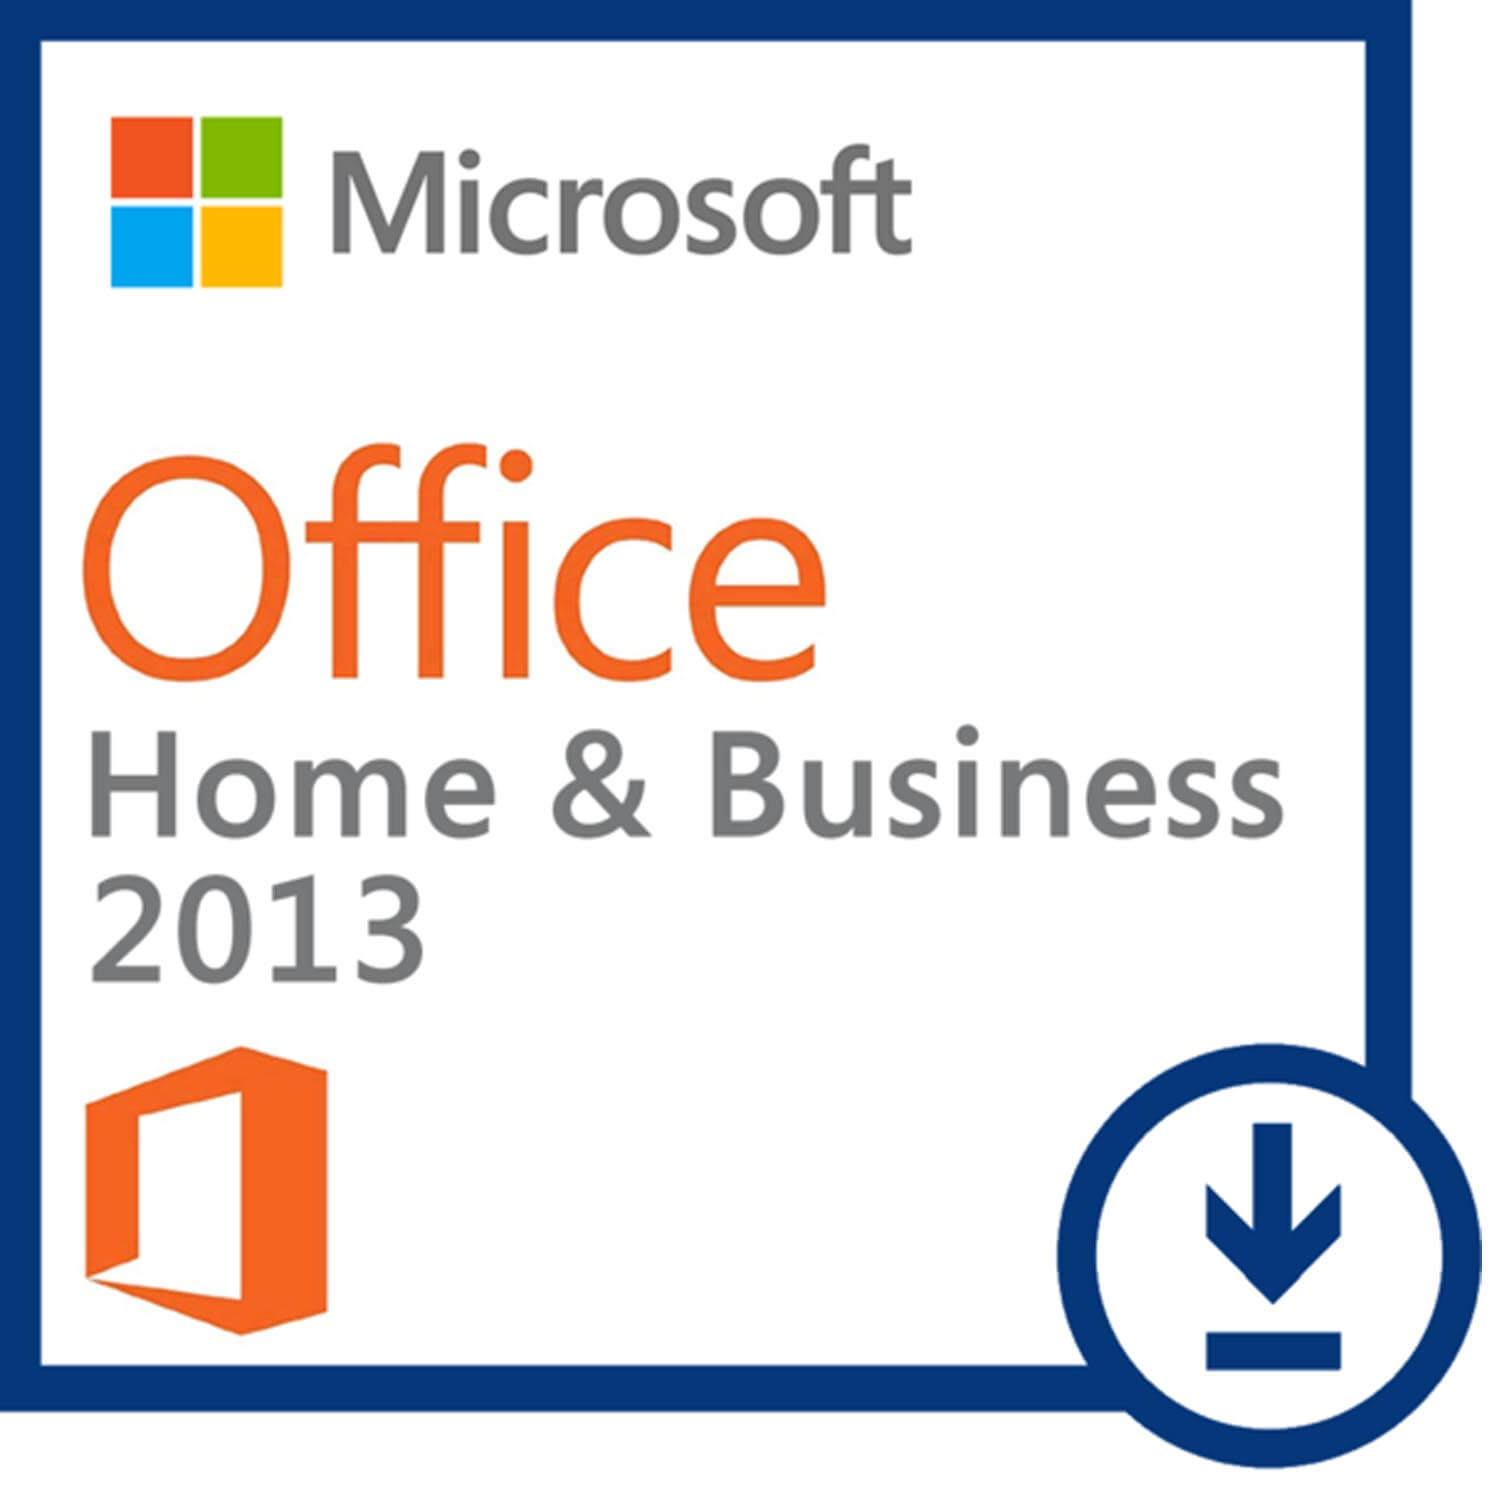 Microsoft office home and business 2013 license key softvire - Windows office home and business 2013 ...